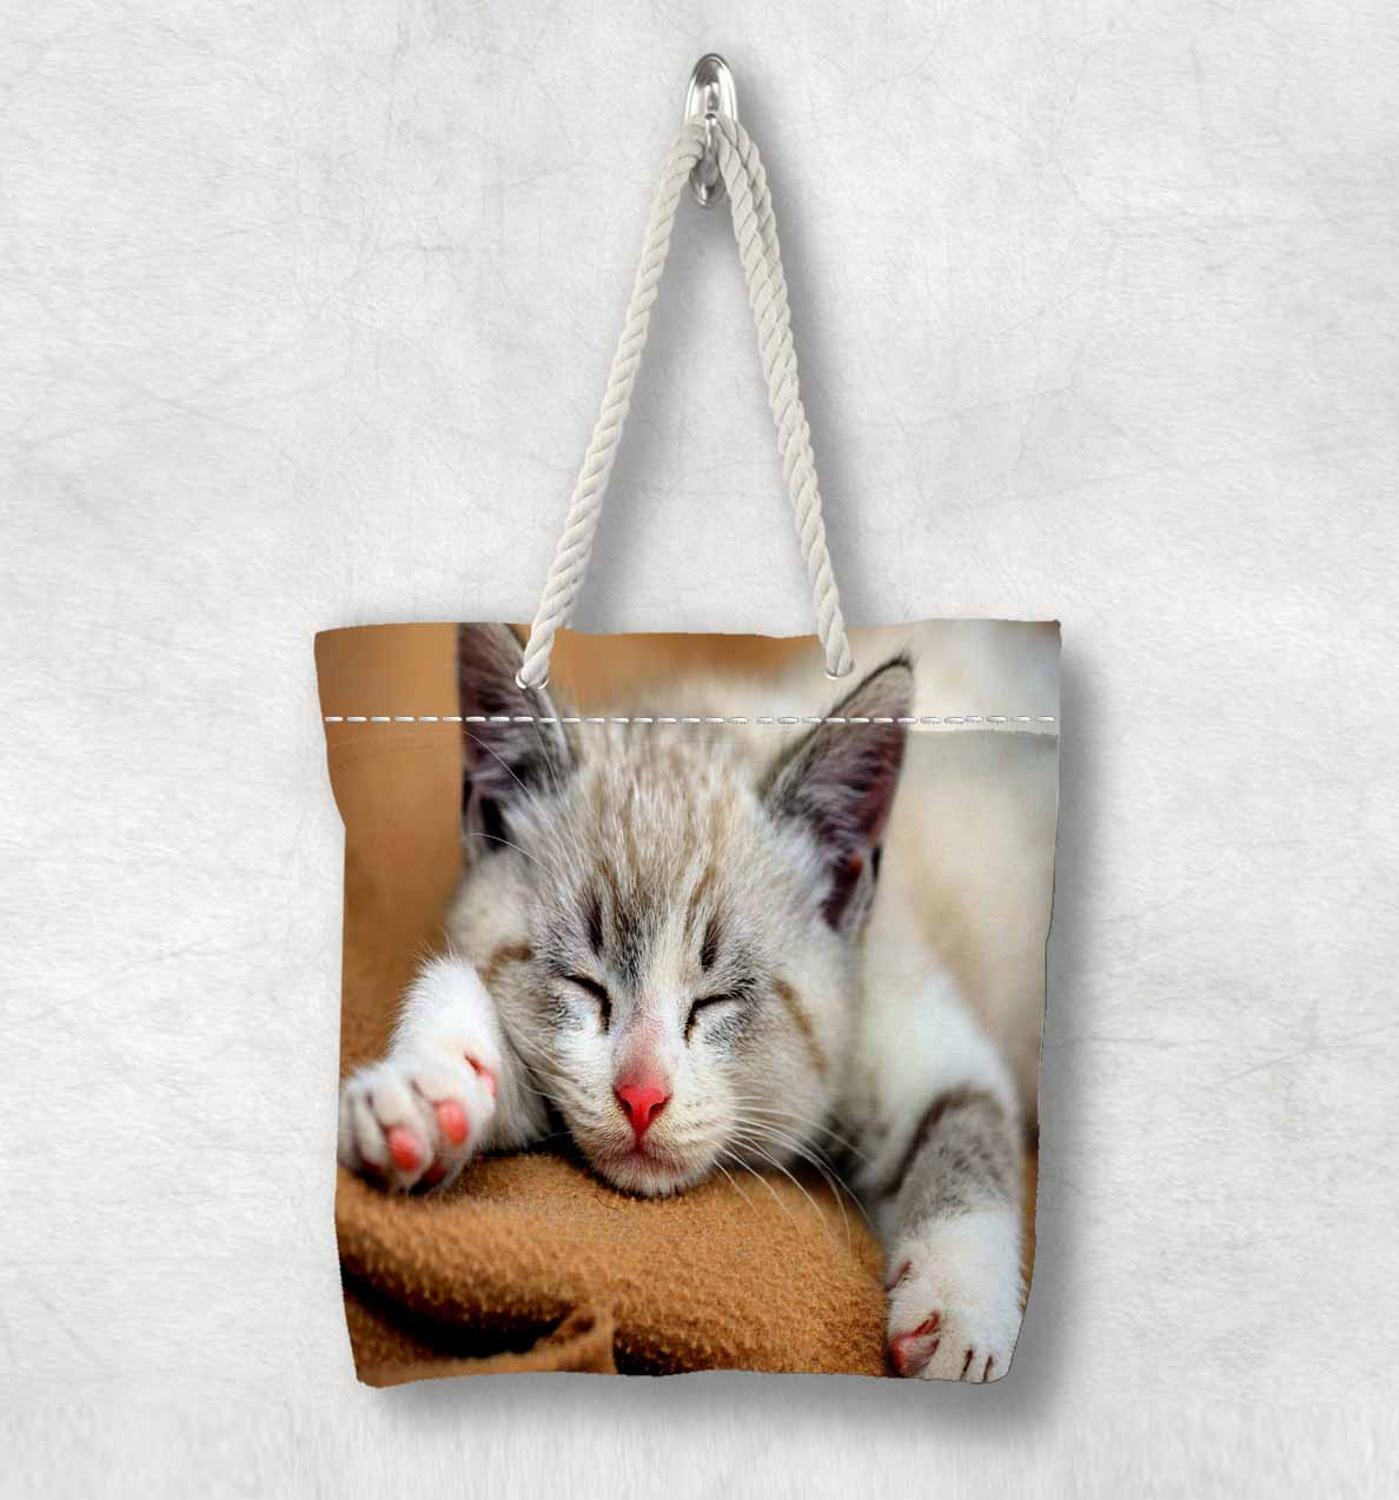 Else Gray Little Cute Sleepy Cat New Fashion White Rope Handle Canvas Bag Cotton Canvas Zippered Tote Bag Shoulder Bag